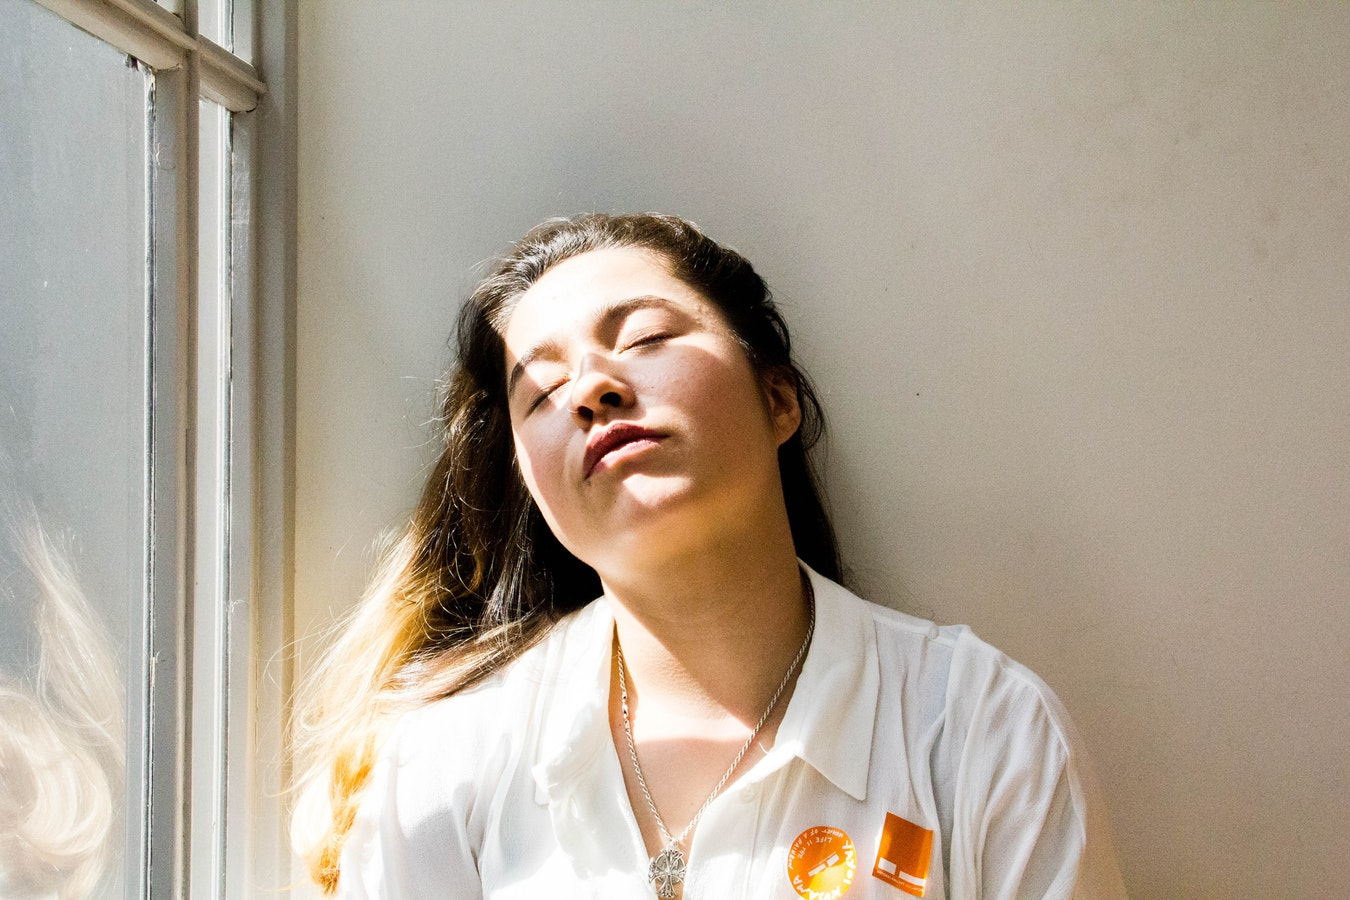 A woman who is tired and laying up next to a wall because she is experiencing caregiver fatigue